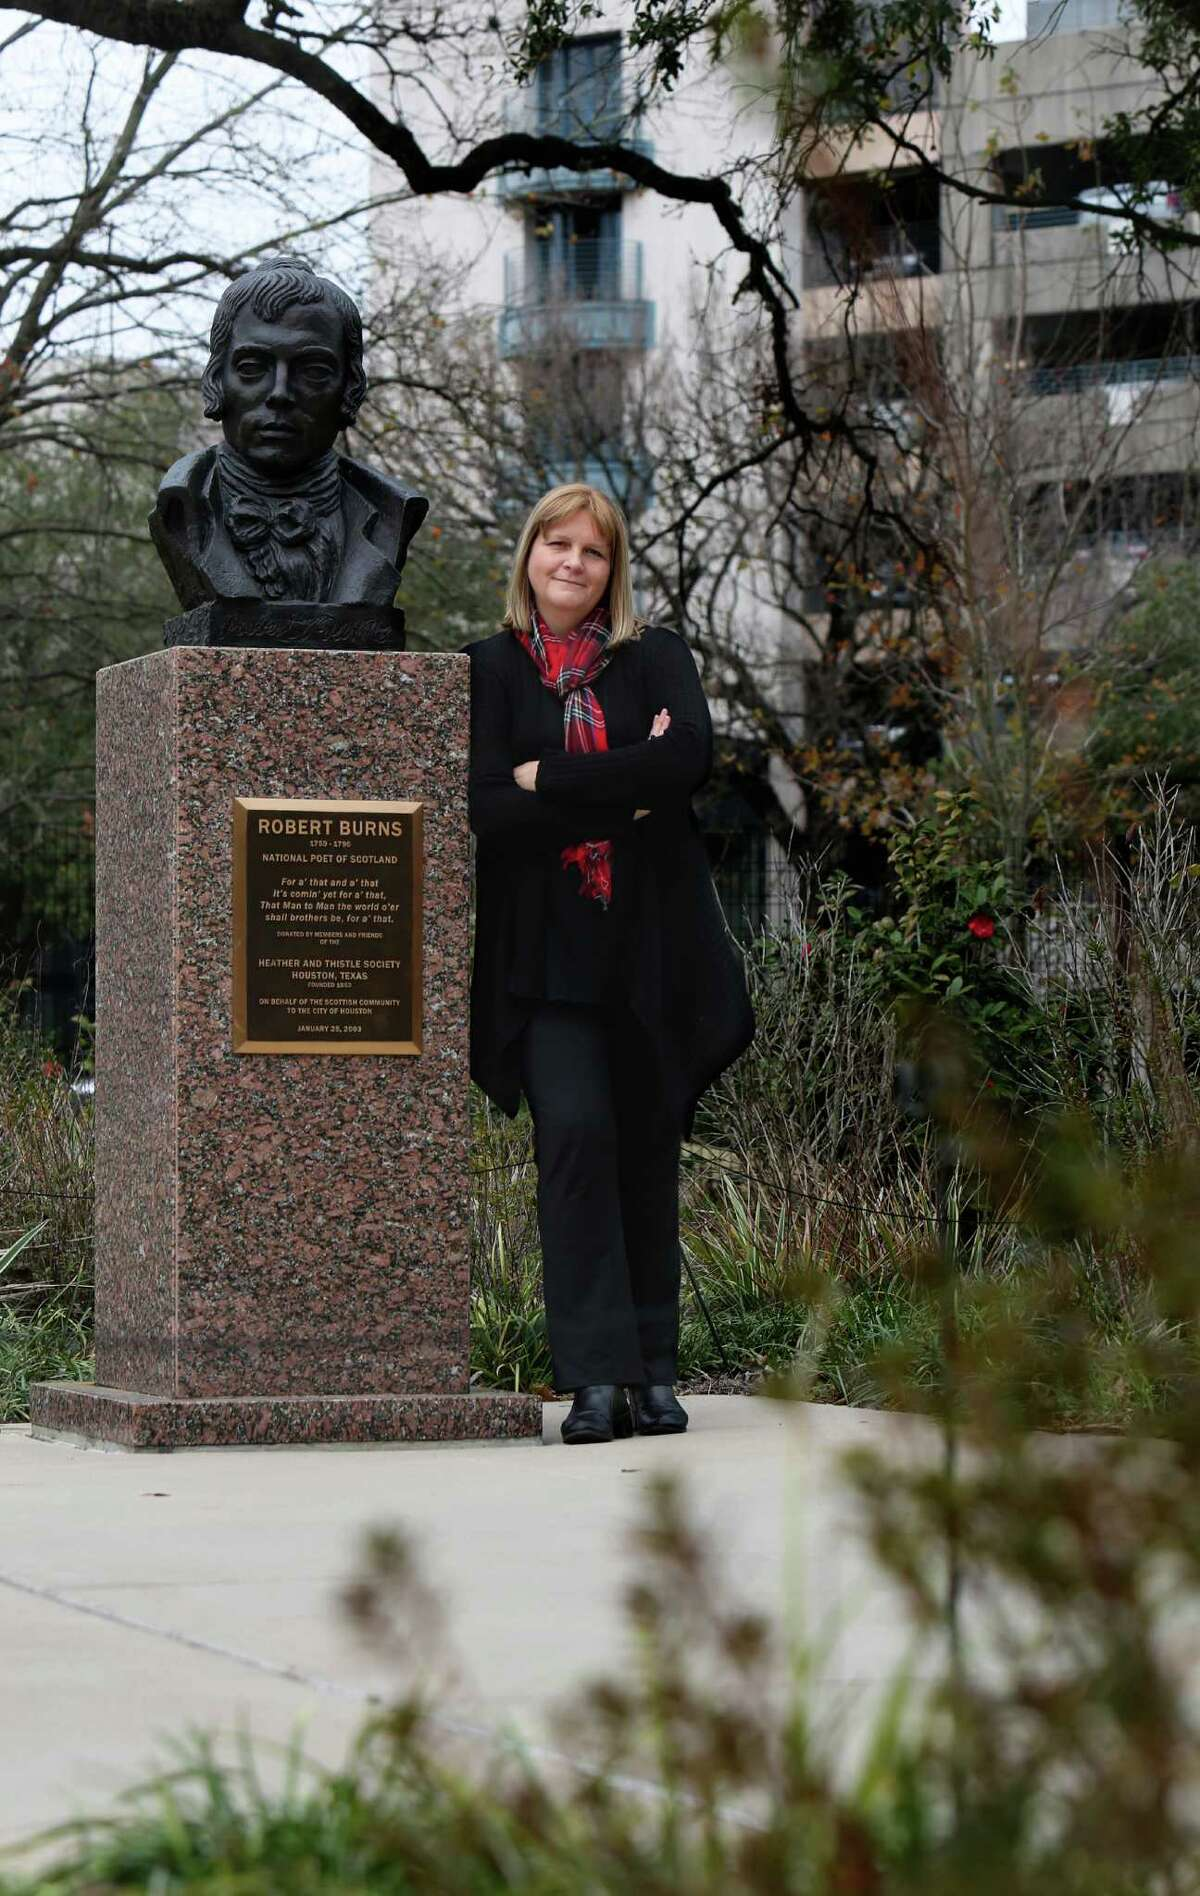 Writer Caroline Leech stands next to a bust of Scottish poet Robert Burns in Houston. Leech has written a wartime romance set in Scotland, and references to the work of Burns pops up throughout the story.